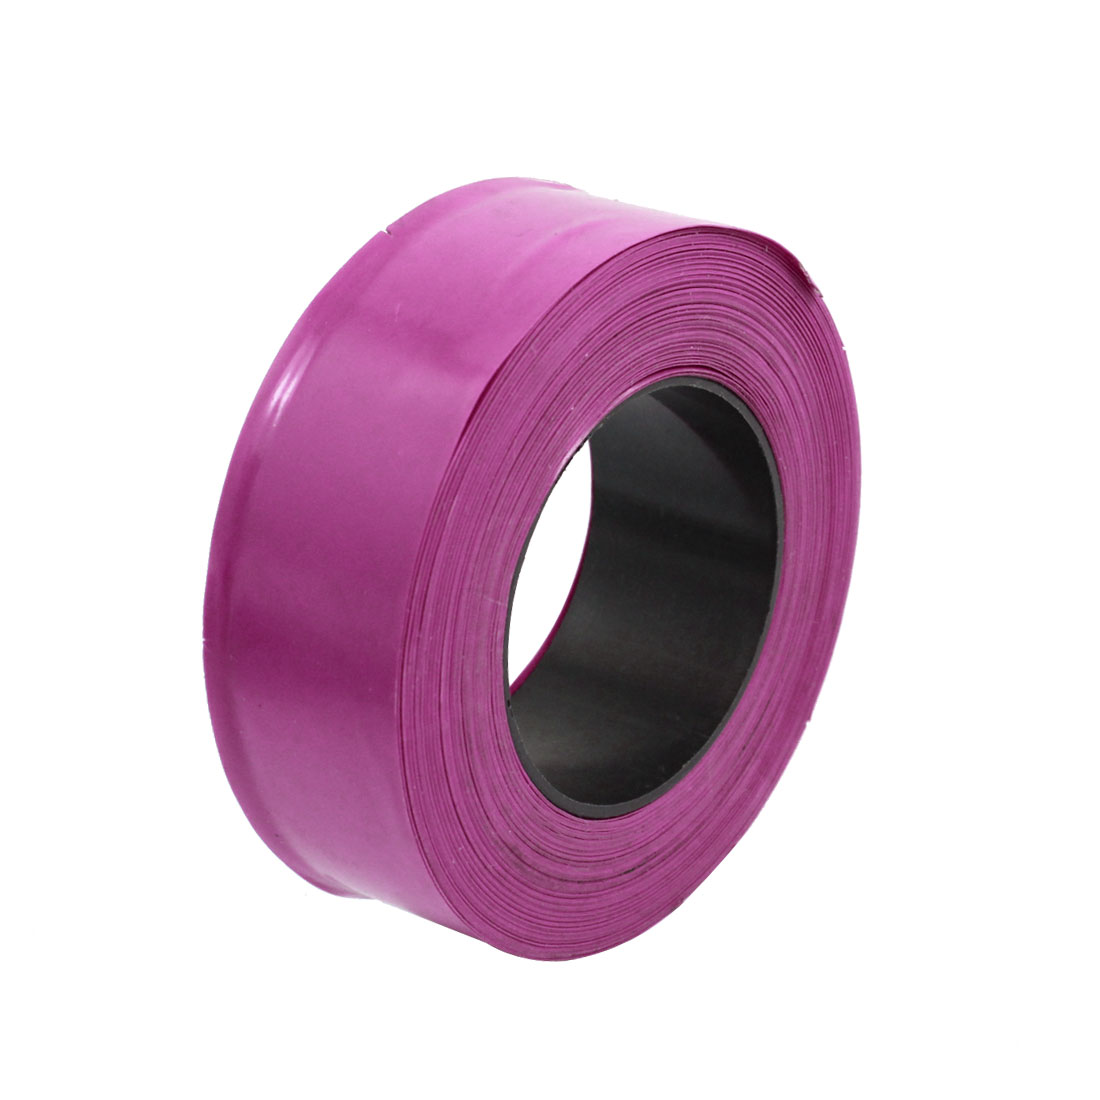 52Ft Length 24mm Width PVC Electrical Insulation Tape Fuchsia